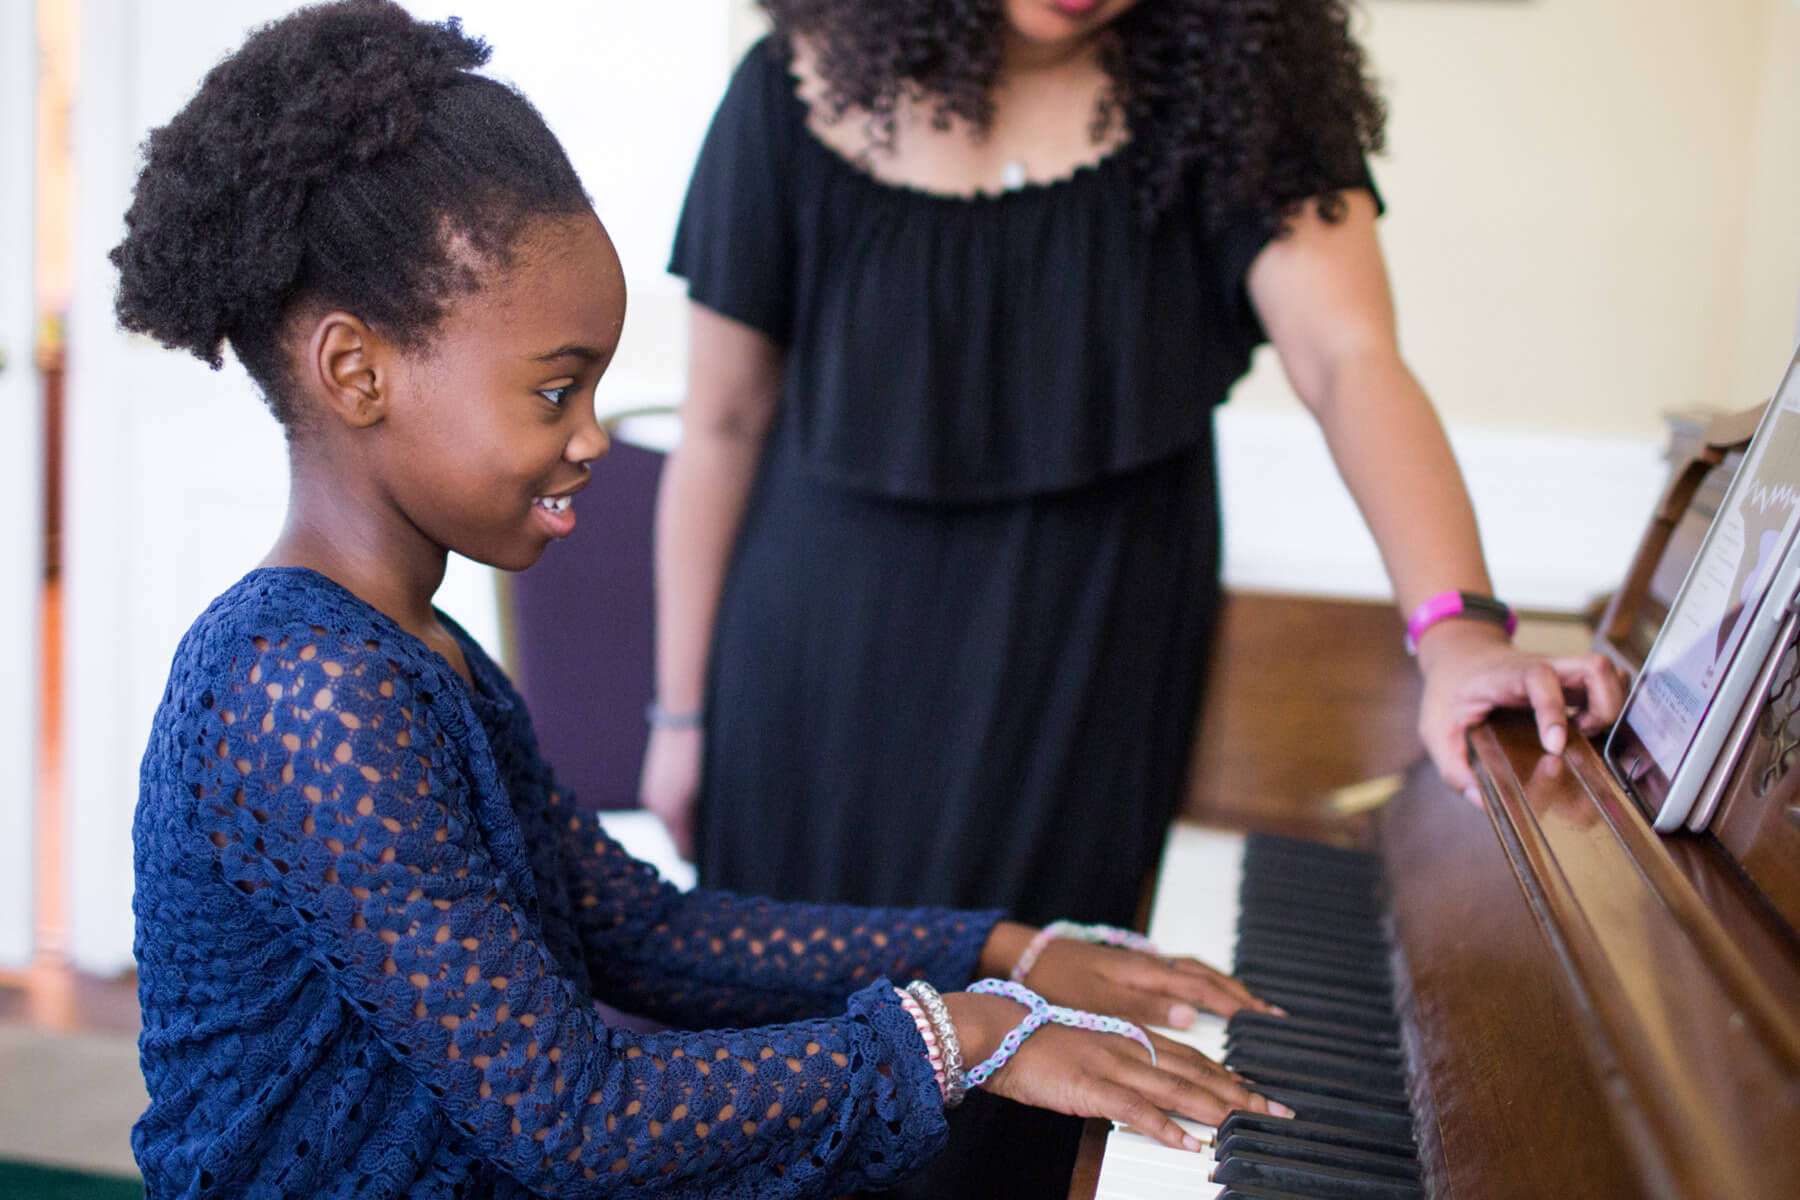 Irmo student plays piano with Instructor